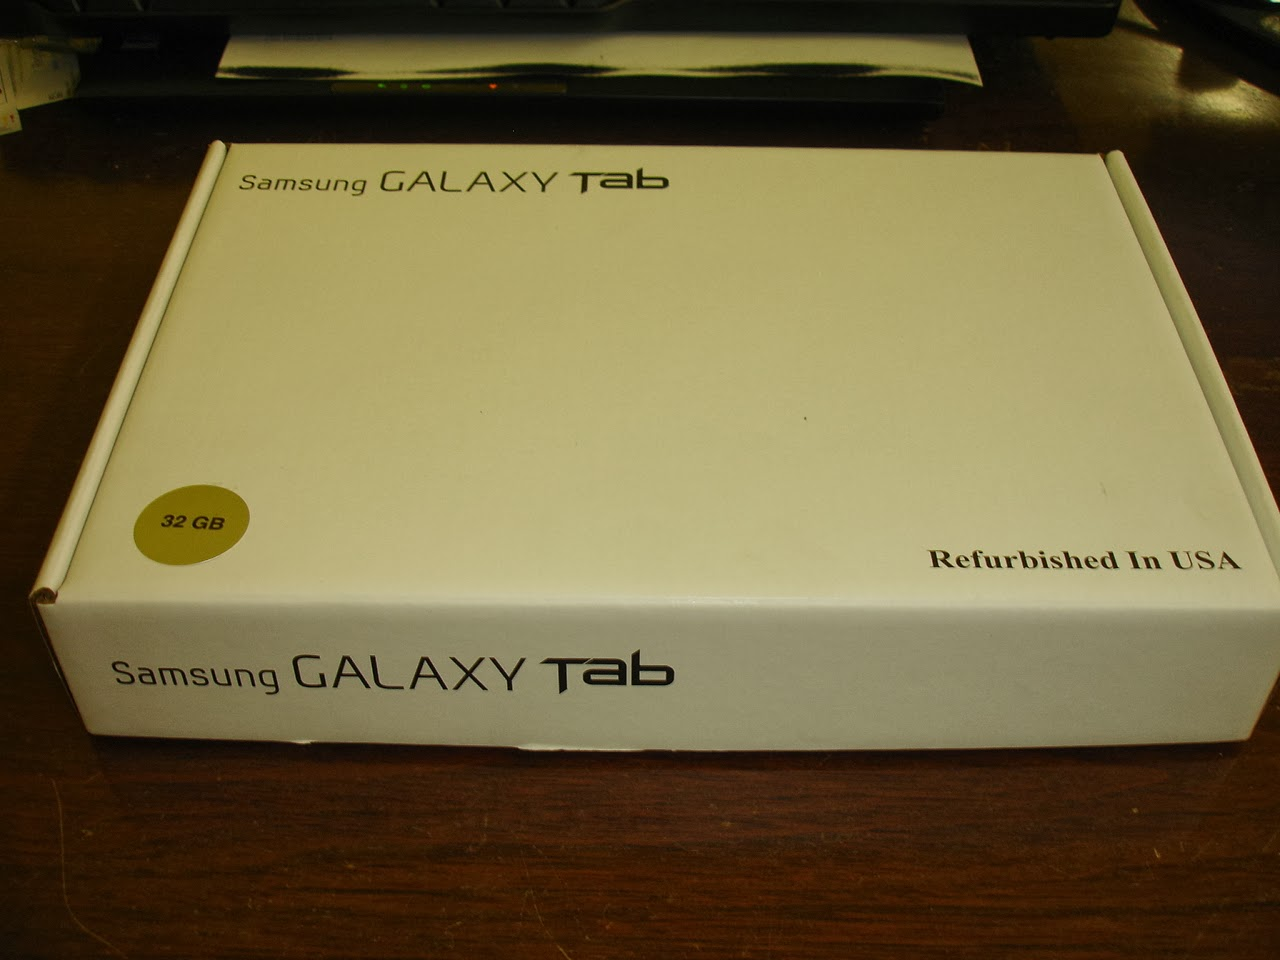 wholesale Samsung Galaxy, cell phones, MidwestGSM forum, suppliers,